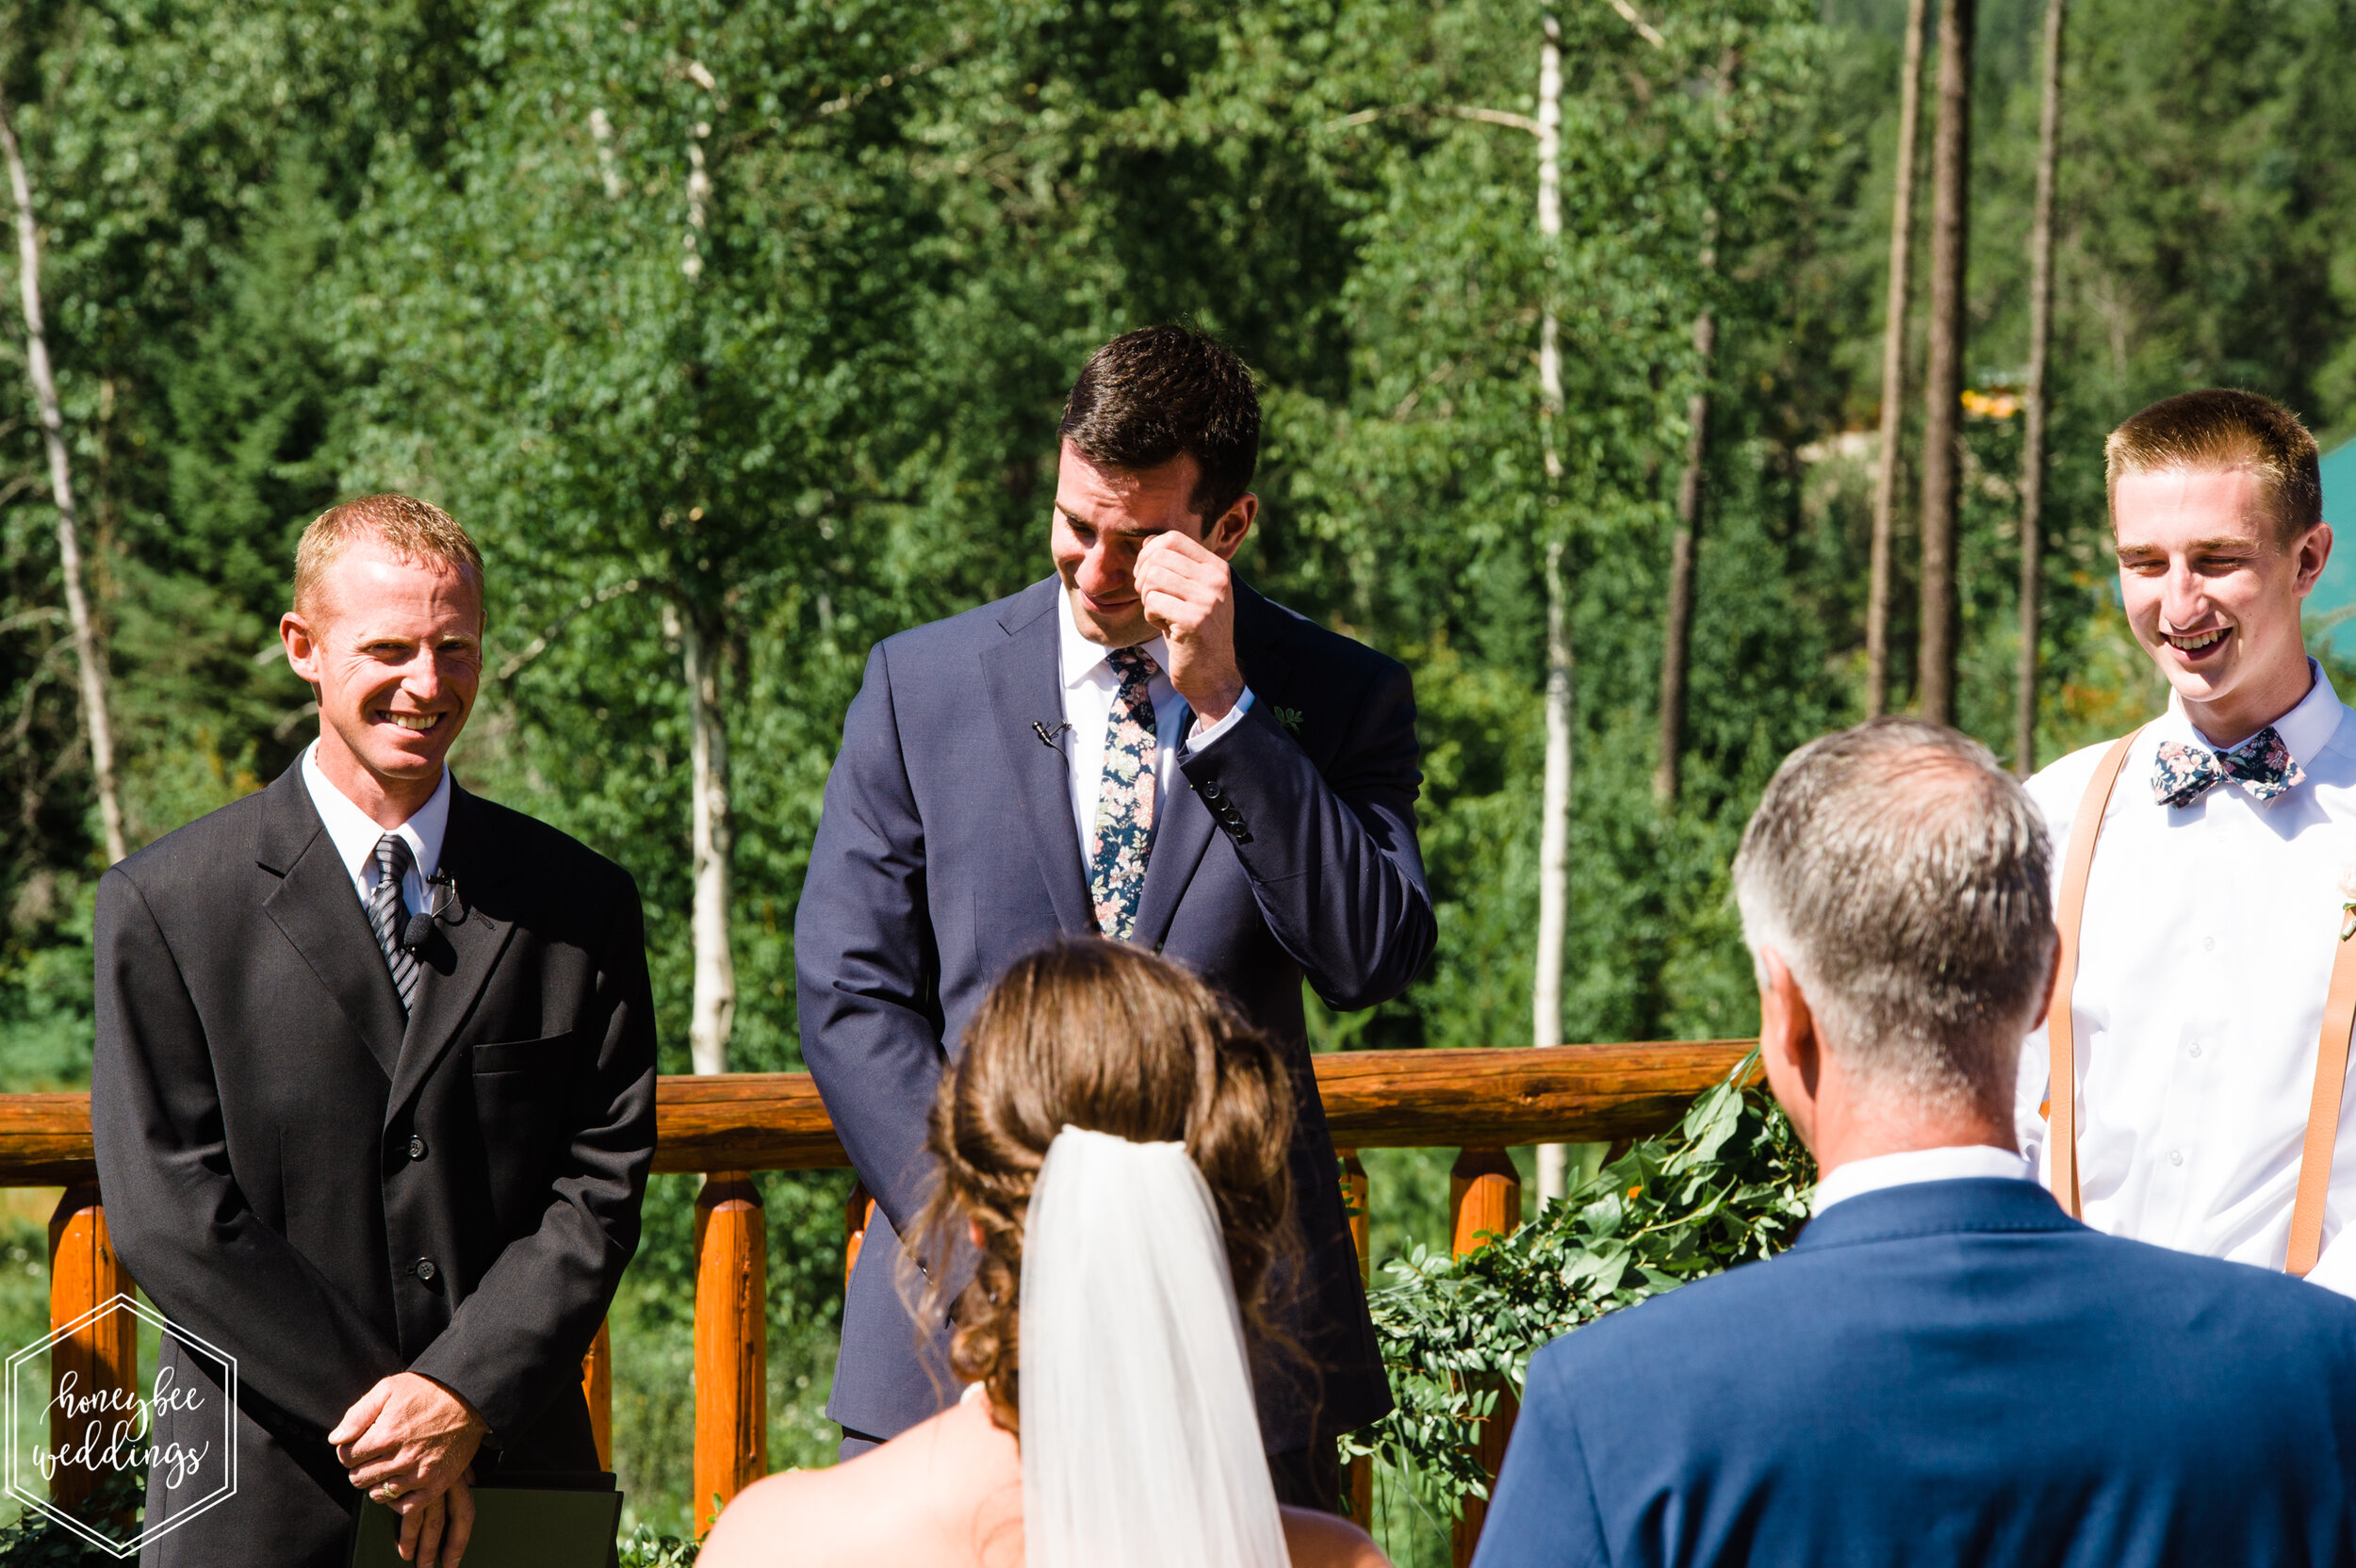 087Glacier National Park Wedding_Glacier Outdoor Center_Honeybee Weddings_Anna & Seth_July 21, 2019-219.jpg